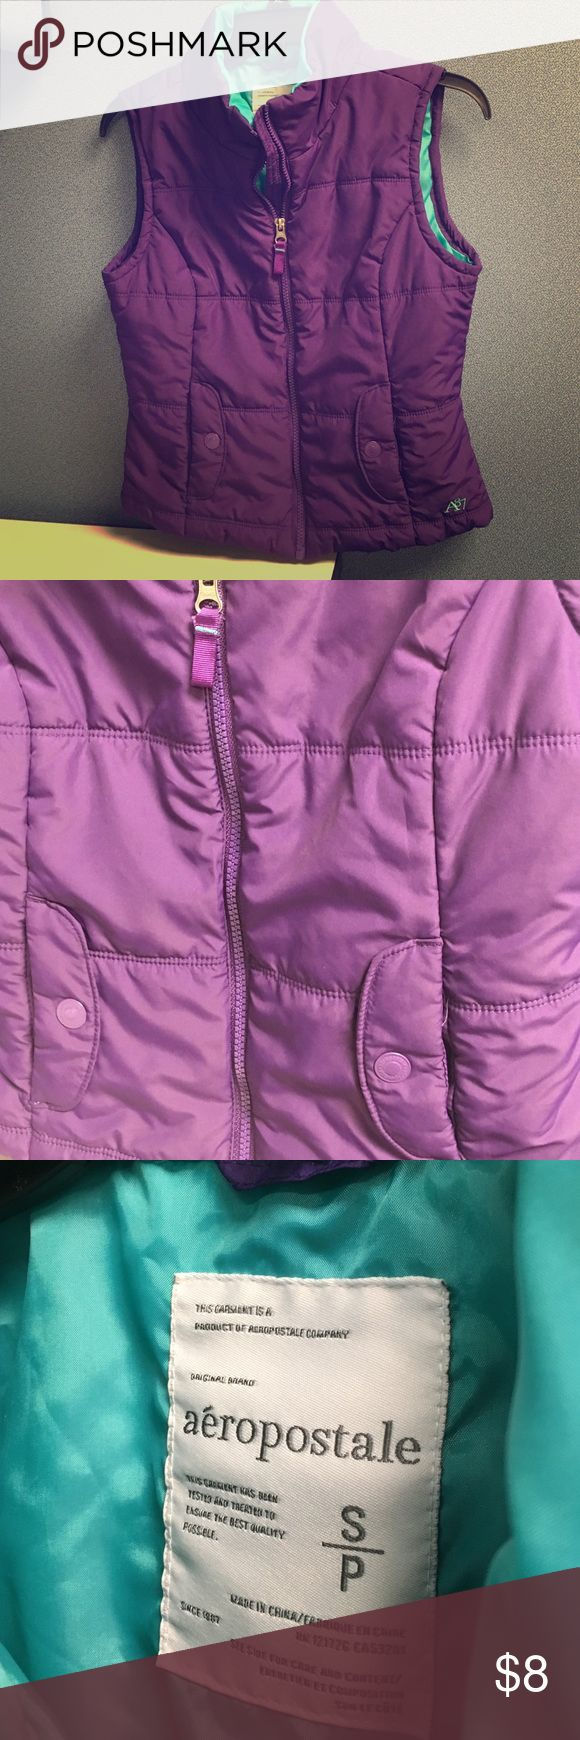 ⚡️Flash sale⚡️Aeropostale vest reserved Purple zip up vest, pockets on each side, blue interior, size small Aeropostale Jackets & Coats Vests